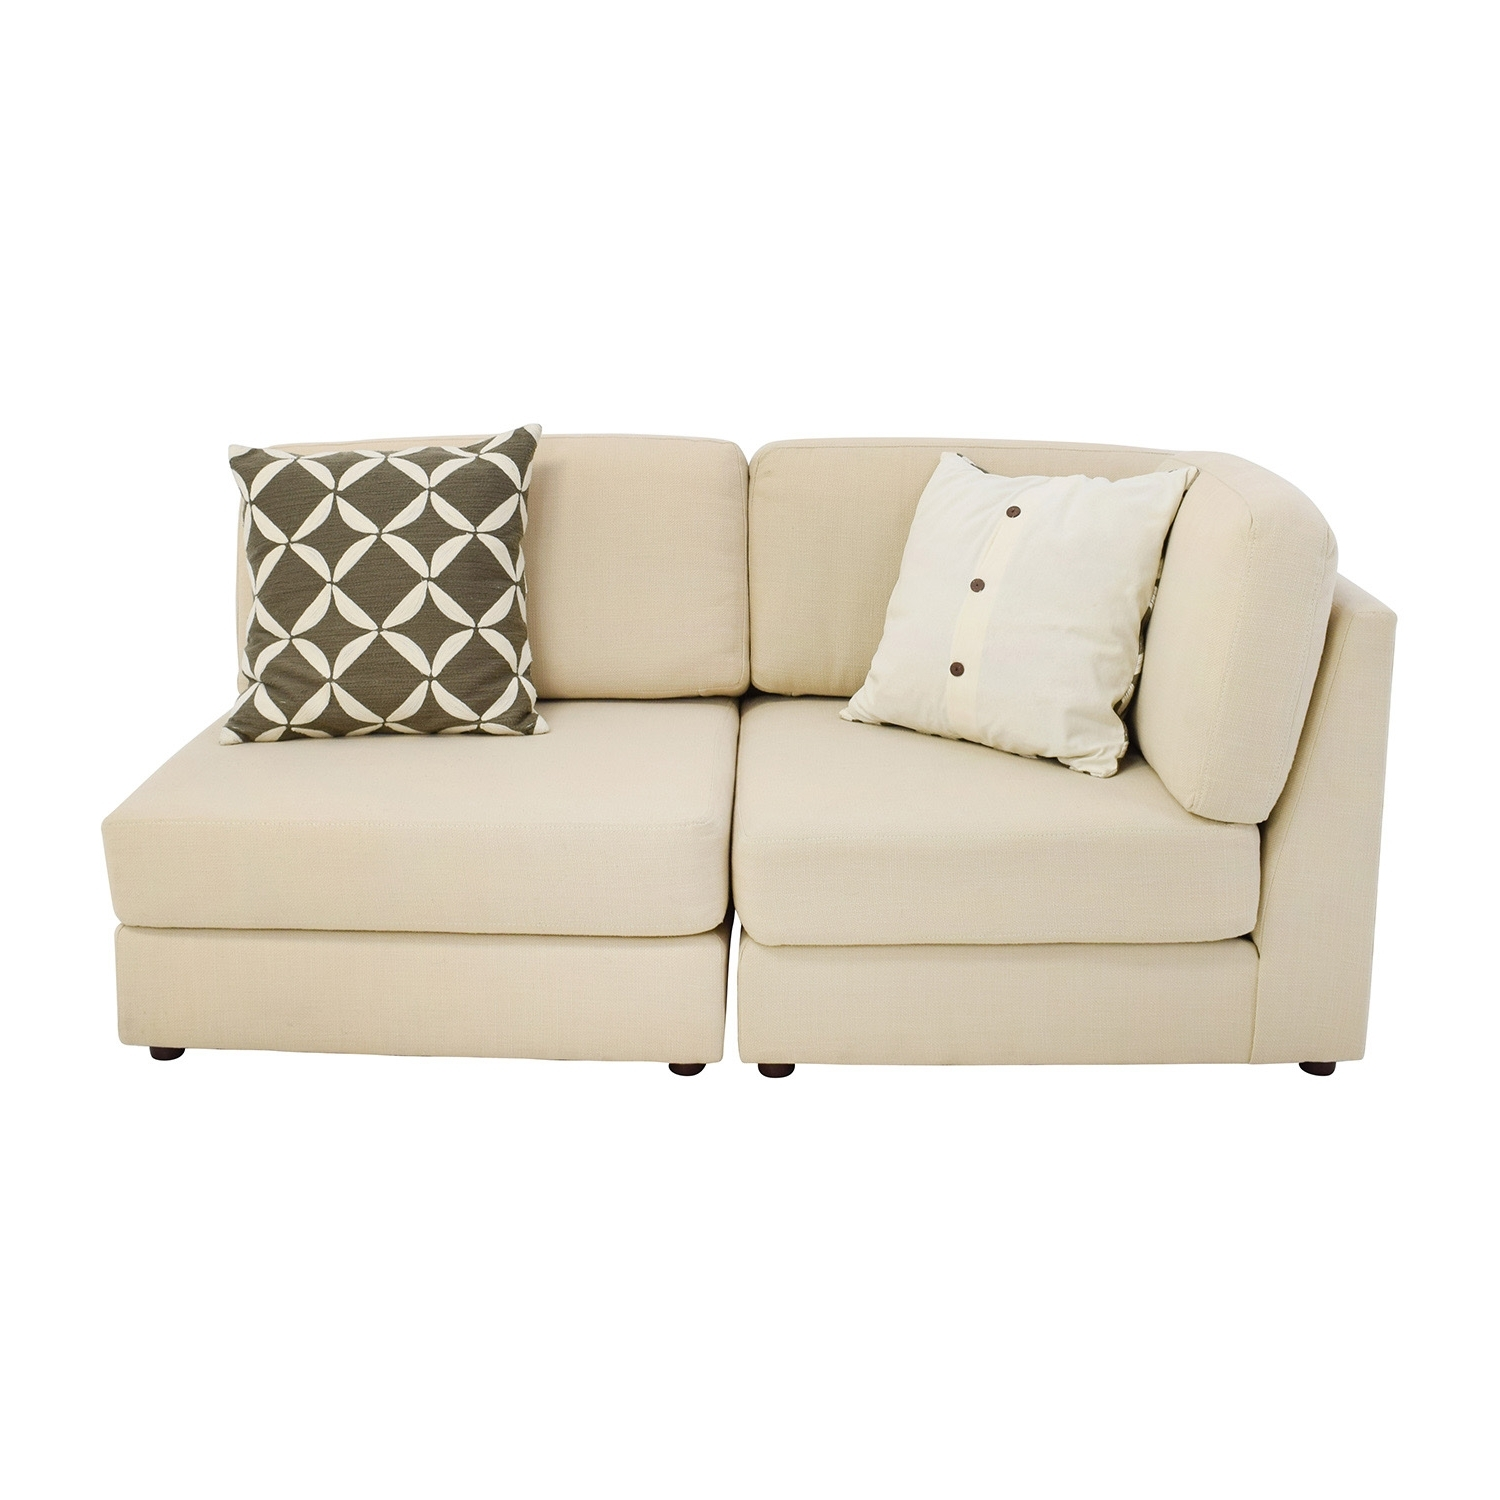 [%81% Off – Bob's Furniture Bob's Furniture Grey Chaise Lounge / Sofas Inside Most Up To Date Chaise Sofas|Chaise Sofas With Best And Newest 81% Off – Bob's Furniture Bob's Furniture Grey Chaise Lounge / Sofas|Best And Newest Chaise Sofas For 81% Off – Bob's Furniture Bob's Furniture Grey Chaise Lounge / Sofas|Well Known 81% Off – Bob's Furniture Bob's Furniture Grey Chaise Lounge / Sofas Within Chaise Sofas%] (View 14 of 15)